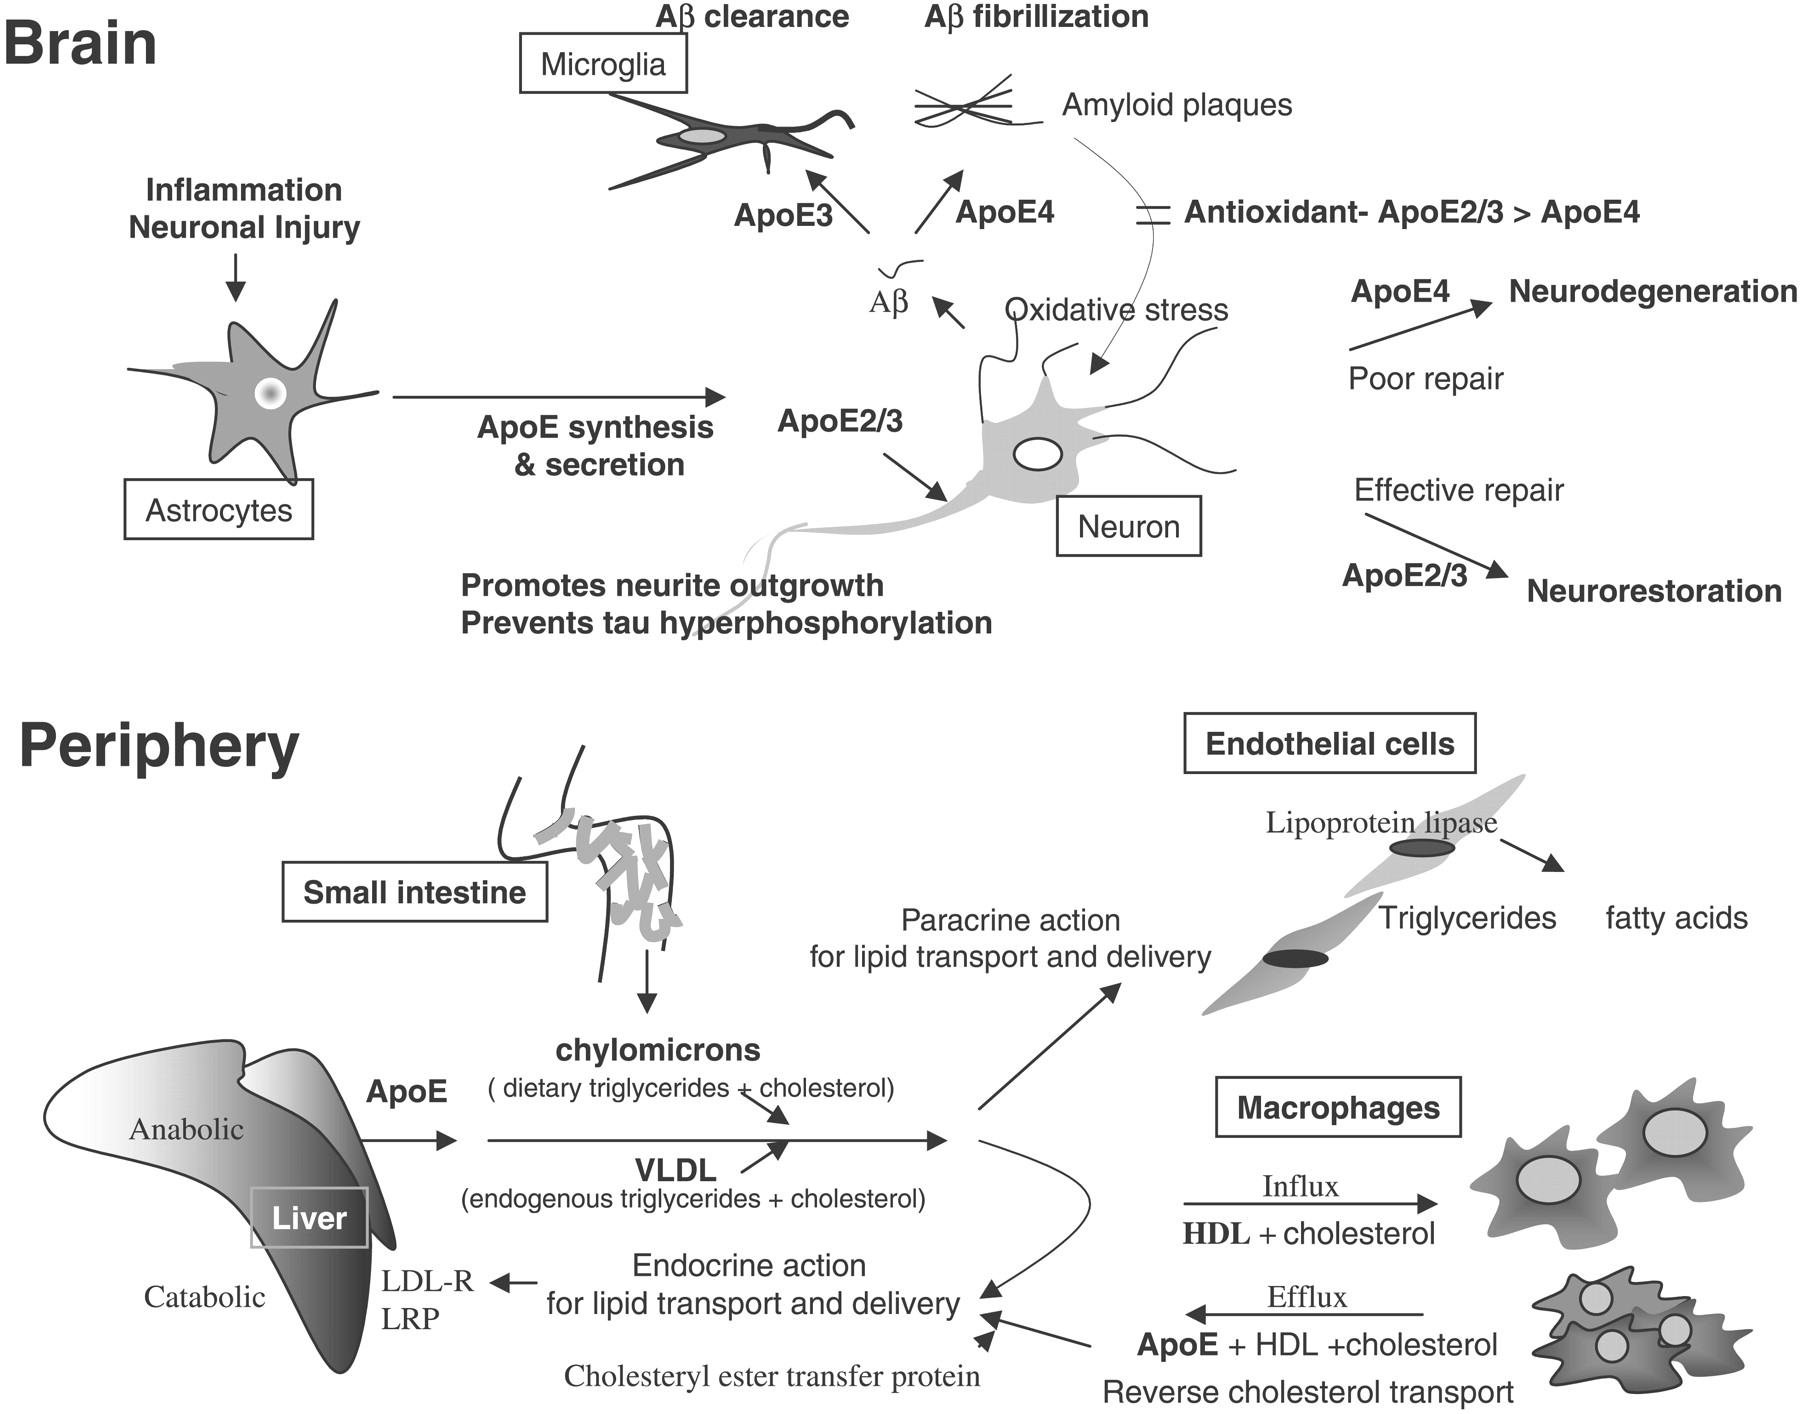 brain-and-periphery-effects-of-estrogen-deficiency